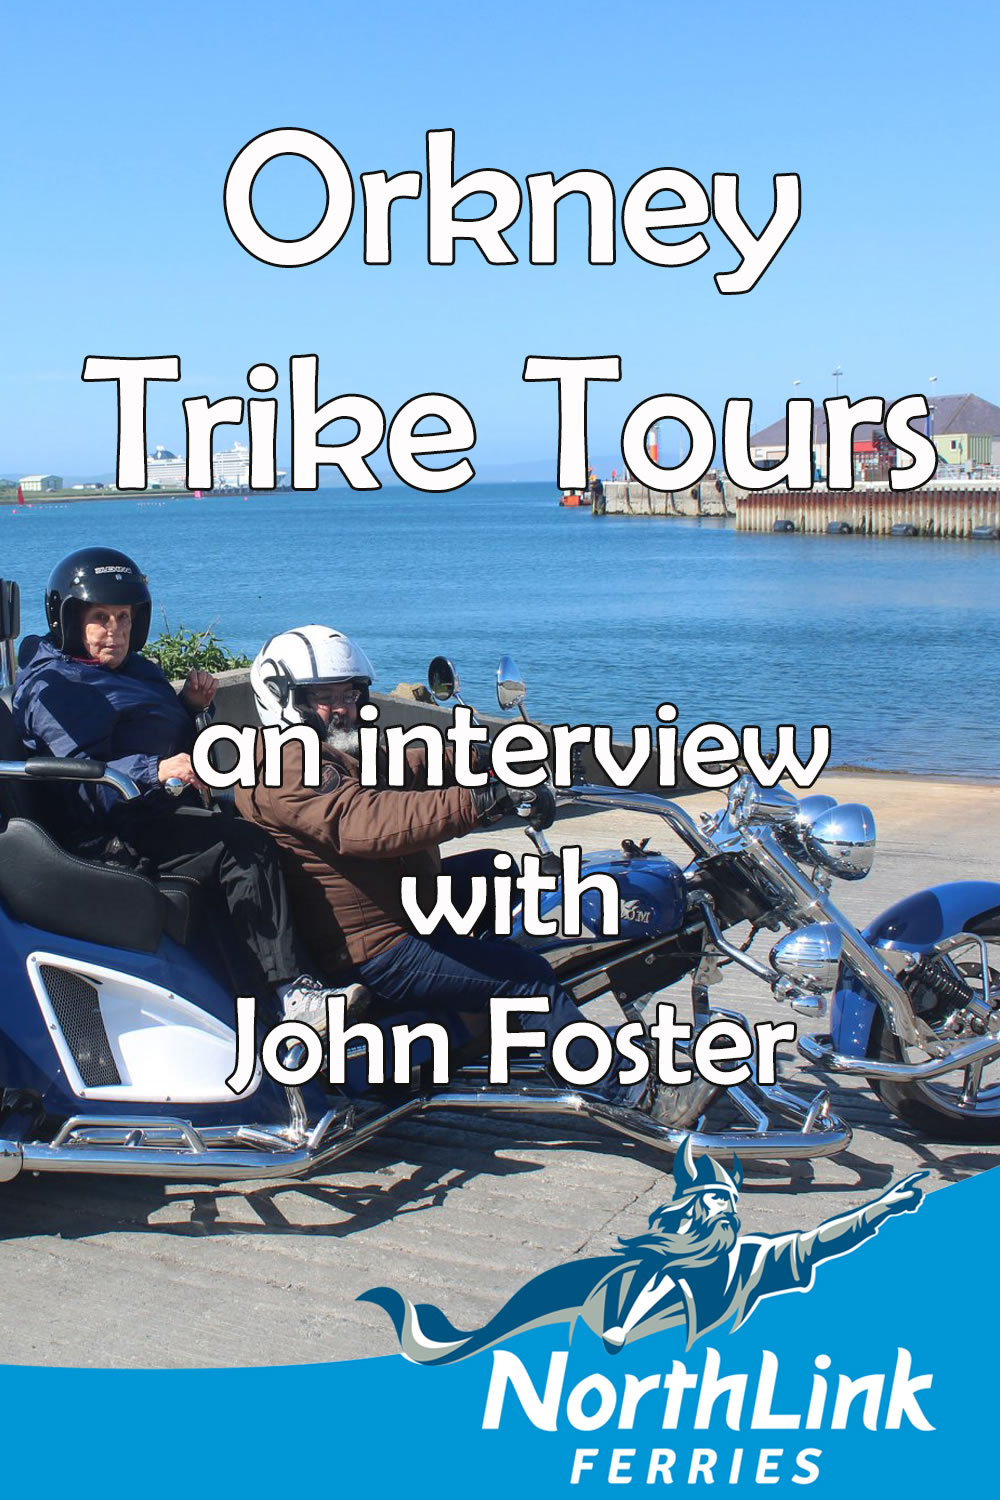 Orkney Trike Tours - an interview with John Foster